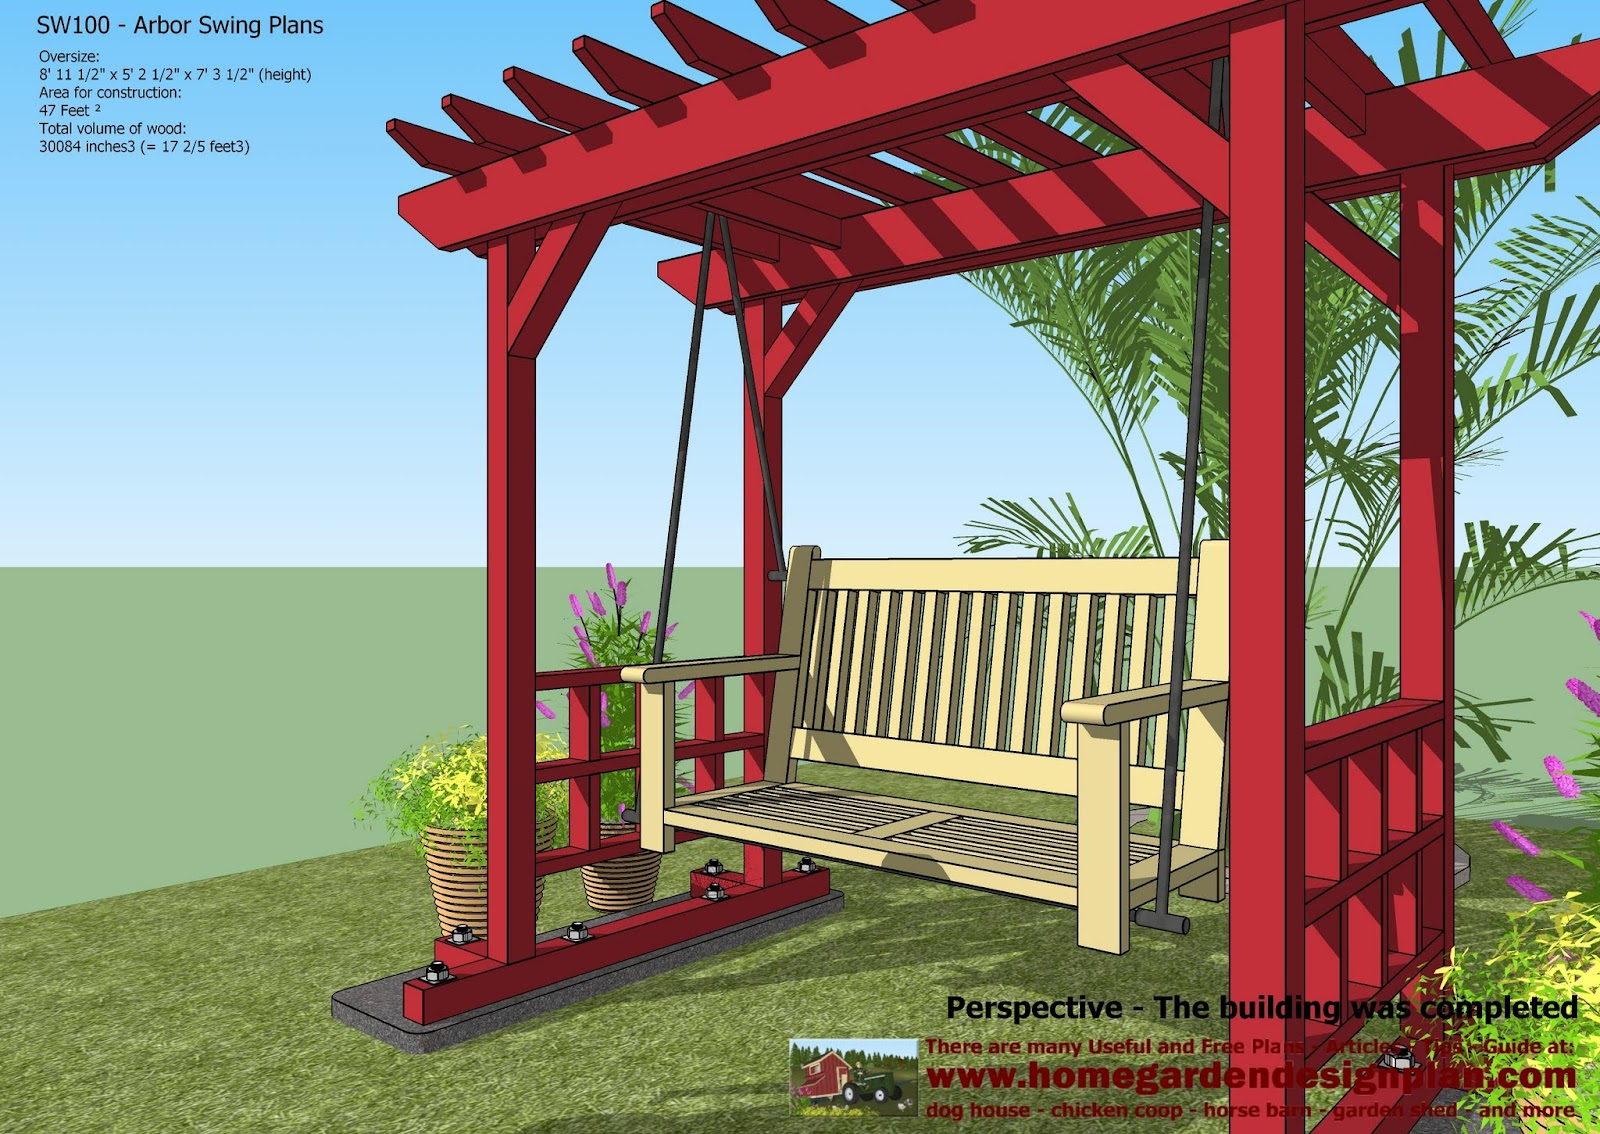 Designer Hollywoodschaukel For Chick Coop Sw100 Arbor Swing Plans Swing Woodworking